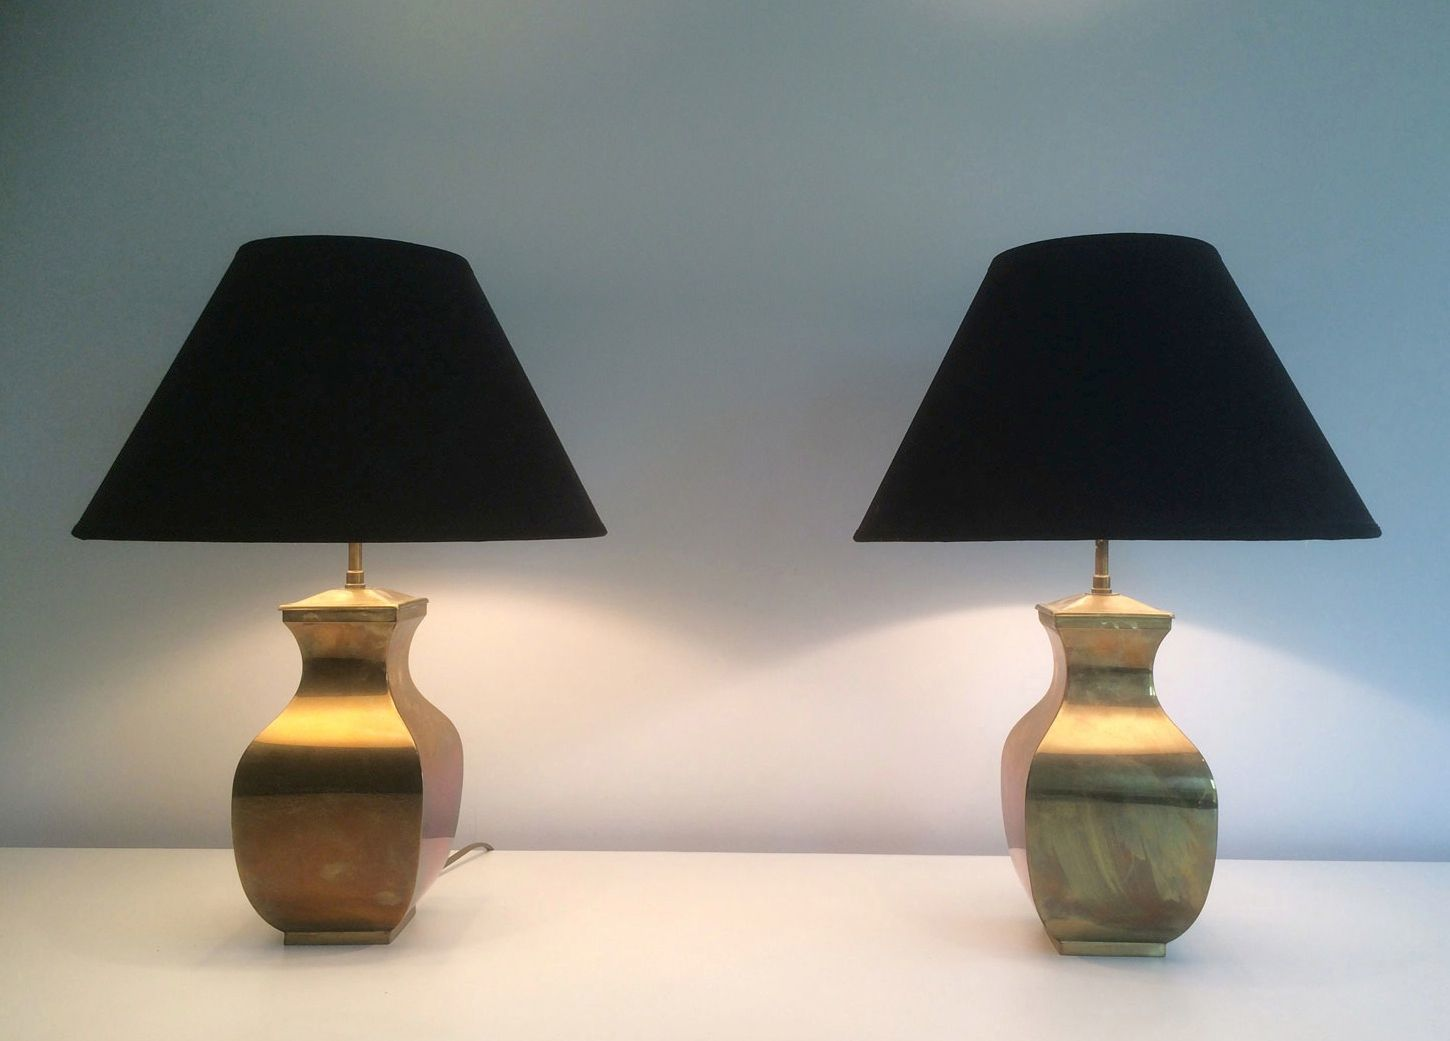 92 glass lamp shades for table lamps